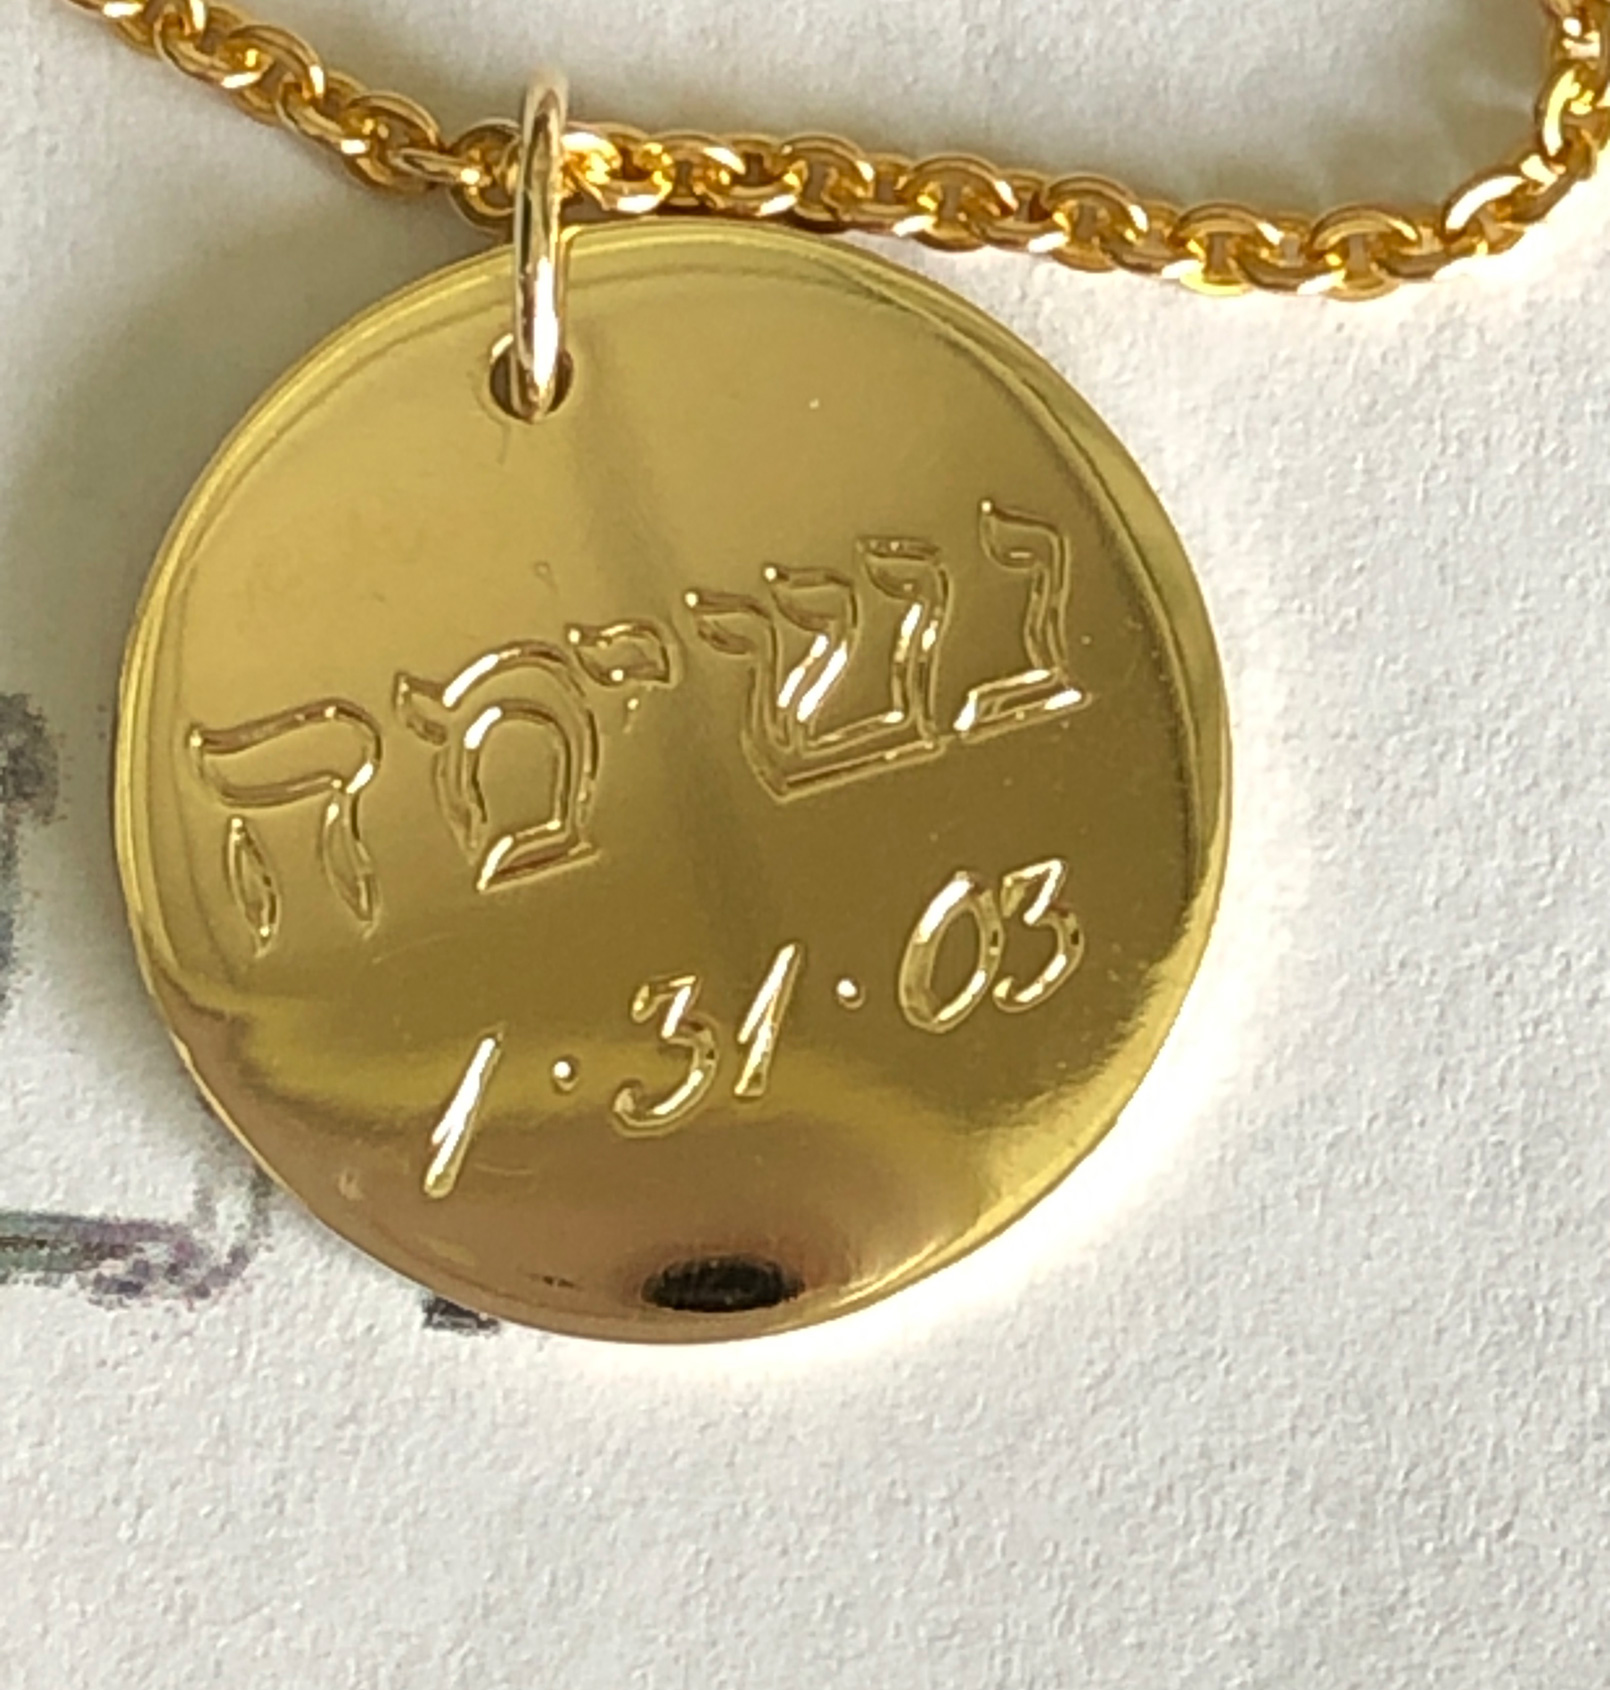 grandaughter's birthdate and Hebrew name engraved on pendant